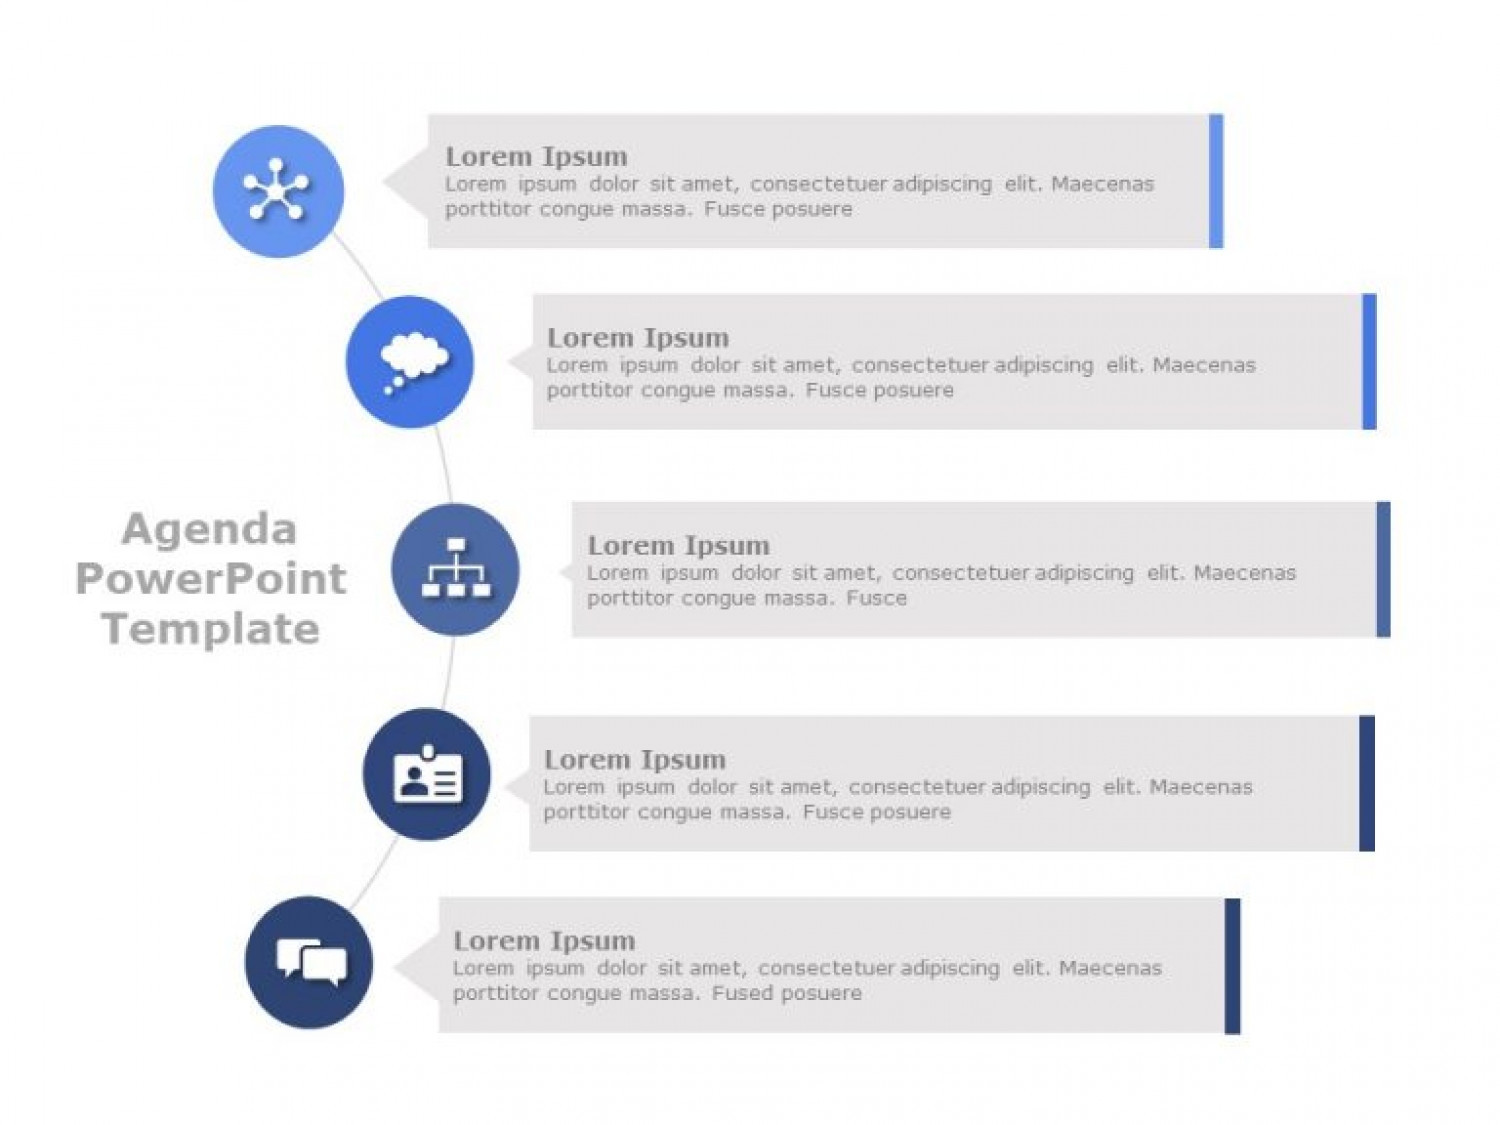 Agenda PowerPoint Template Infographic